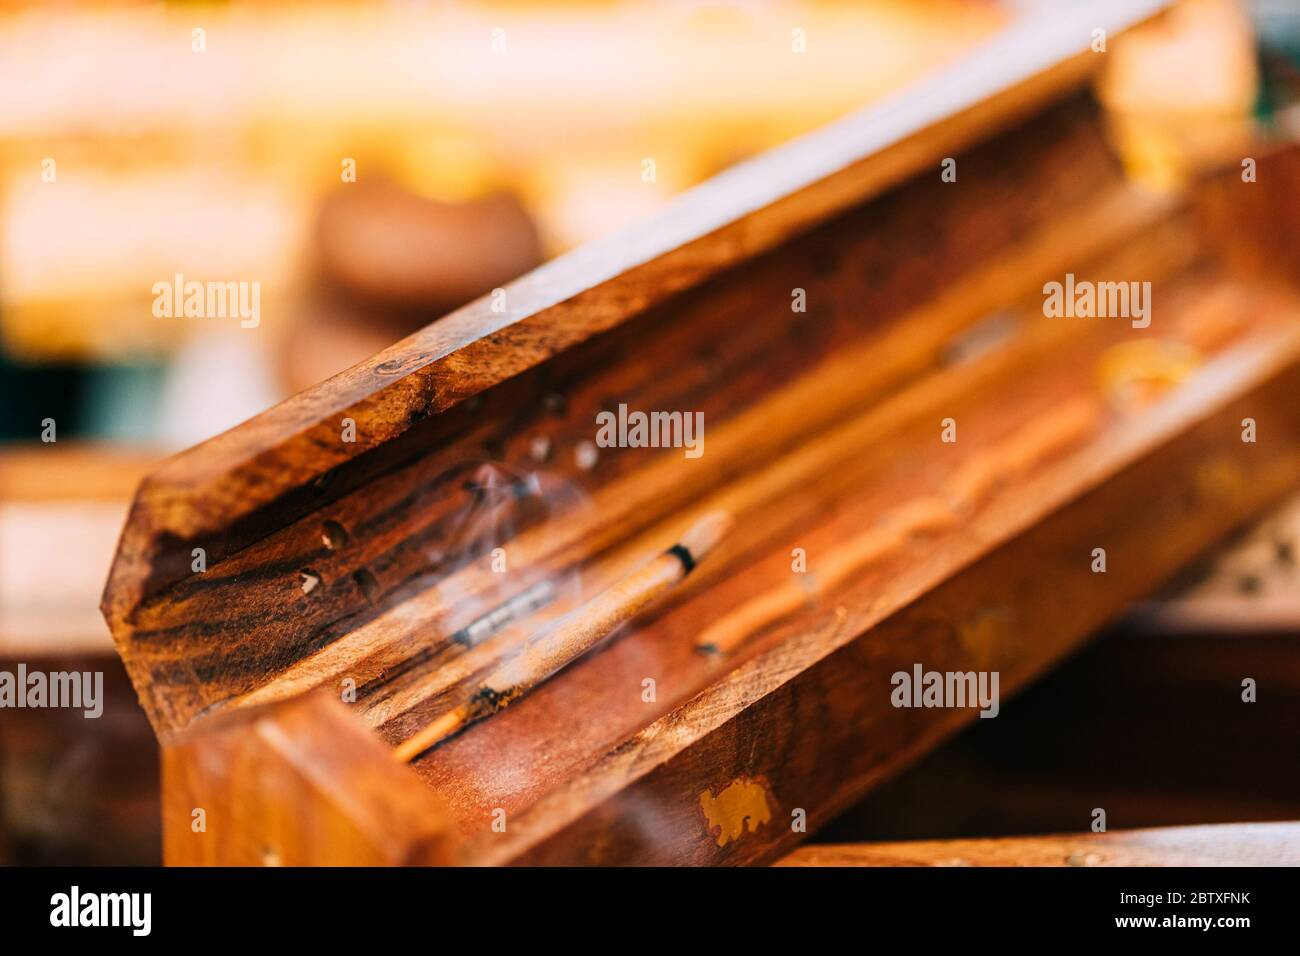 Smoking Burning Incense Aromatic Sticks In Wooden Box Releases Fragrant Smoke Incense Is Used For Aesthetic Reasons Aromatherapy Meditation And Ce Stock Photo Alamy